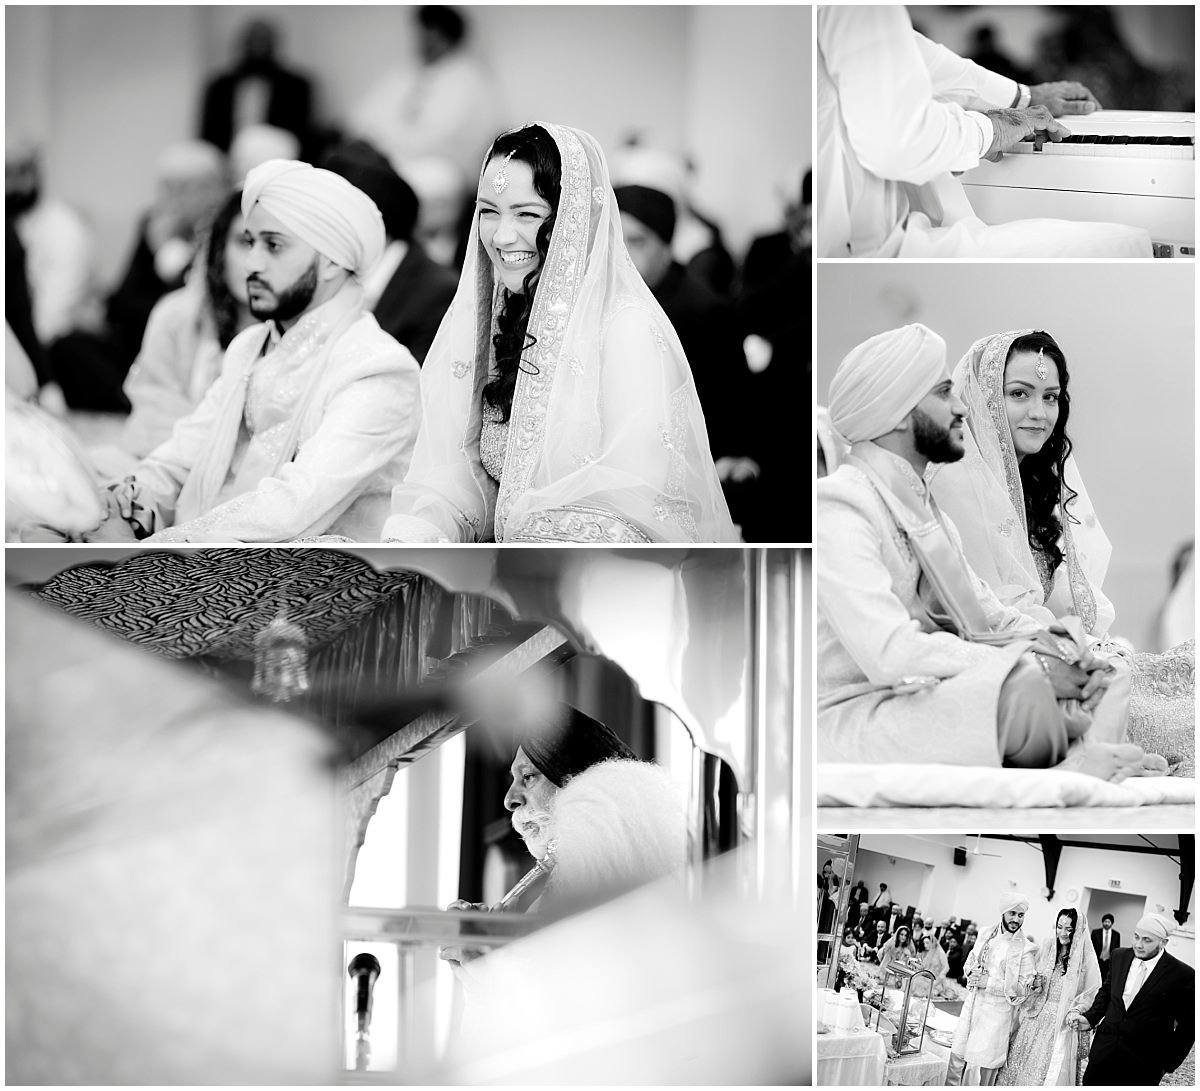 Sikh wedding photos in nottingham